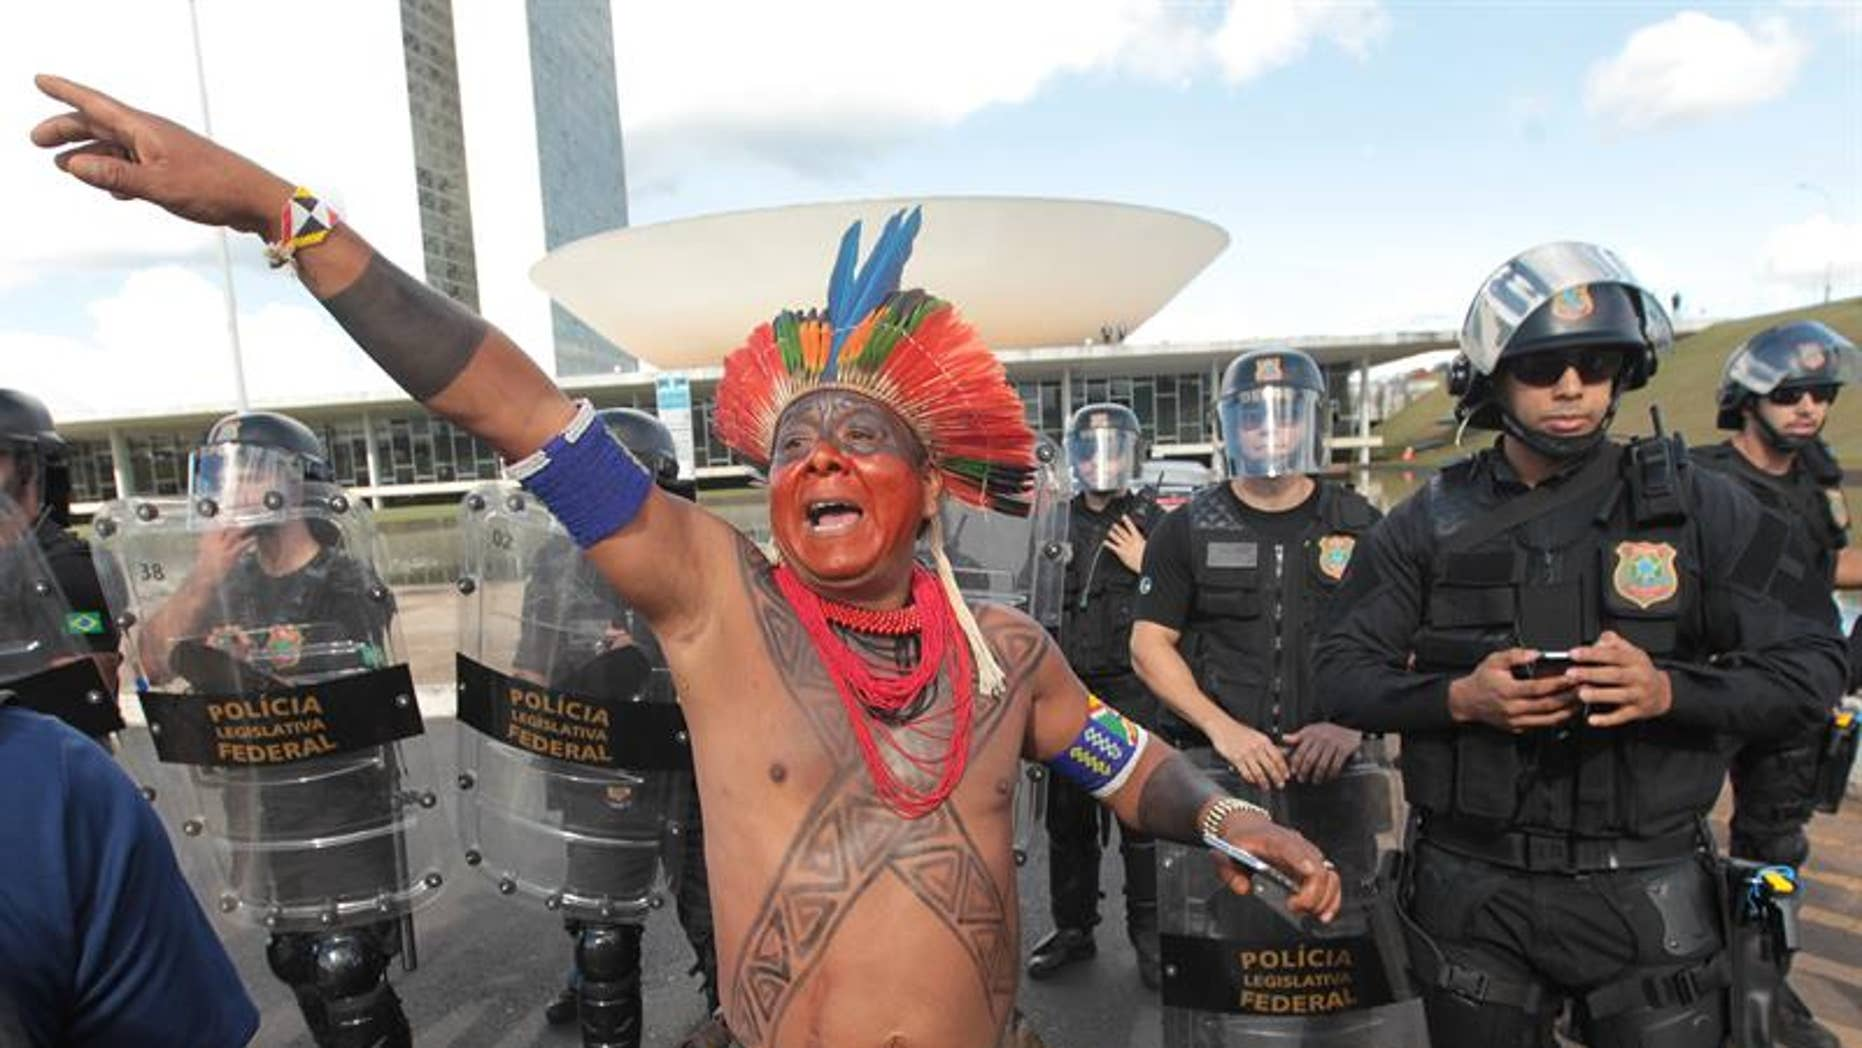 An indigenous protester during a protest next to Explanada dos Ministerios in Brasilia, April 25, 2017.